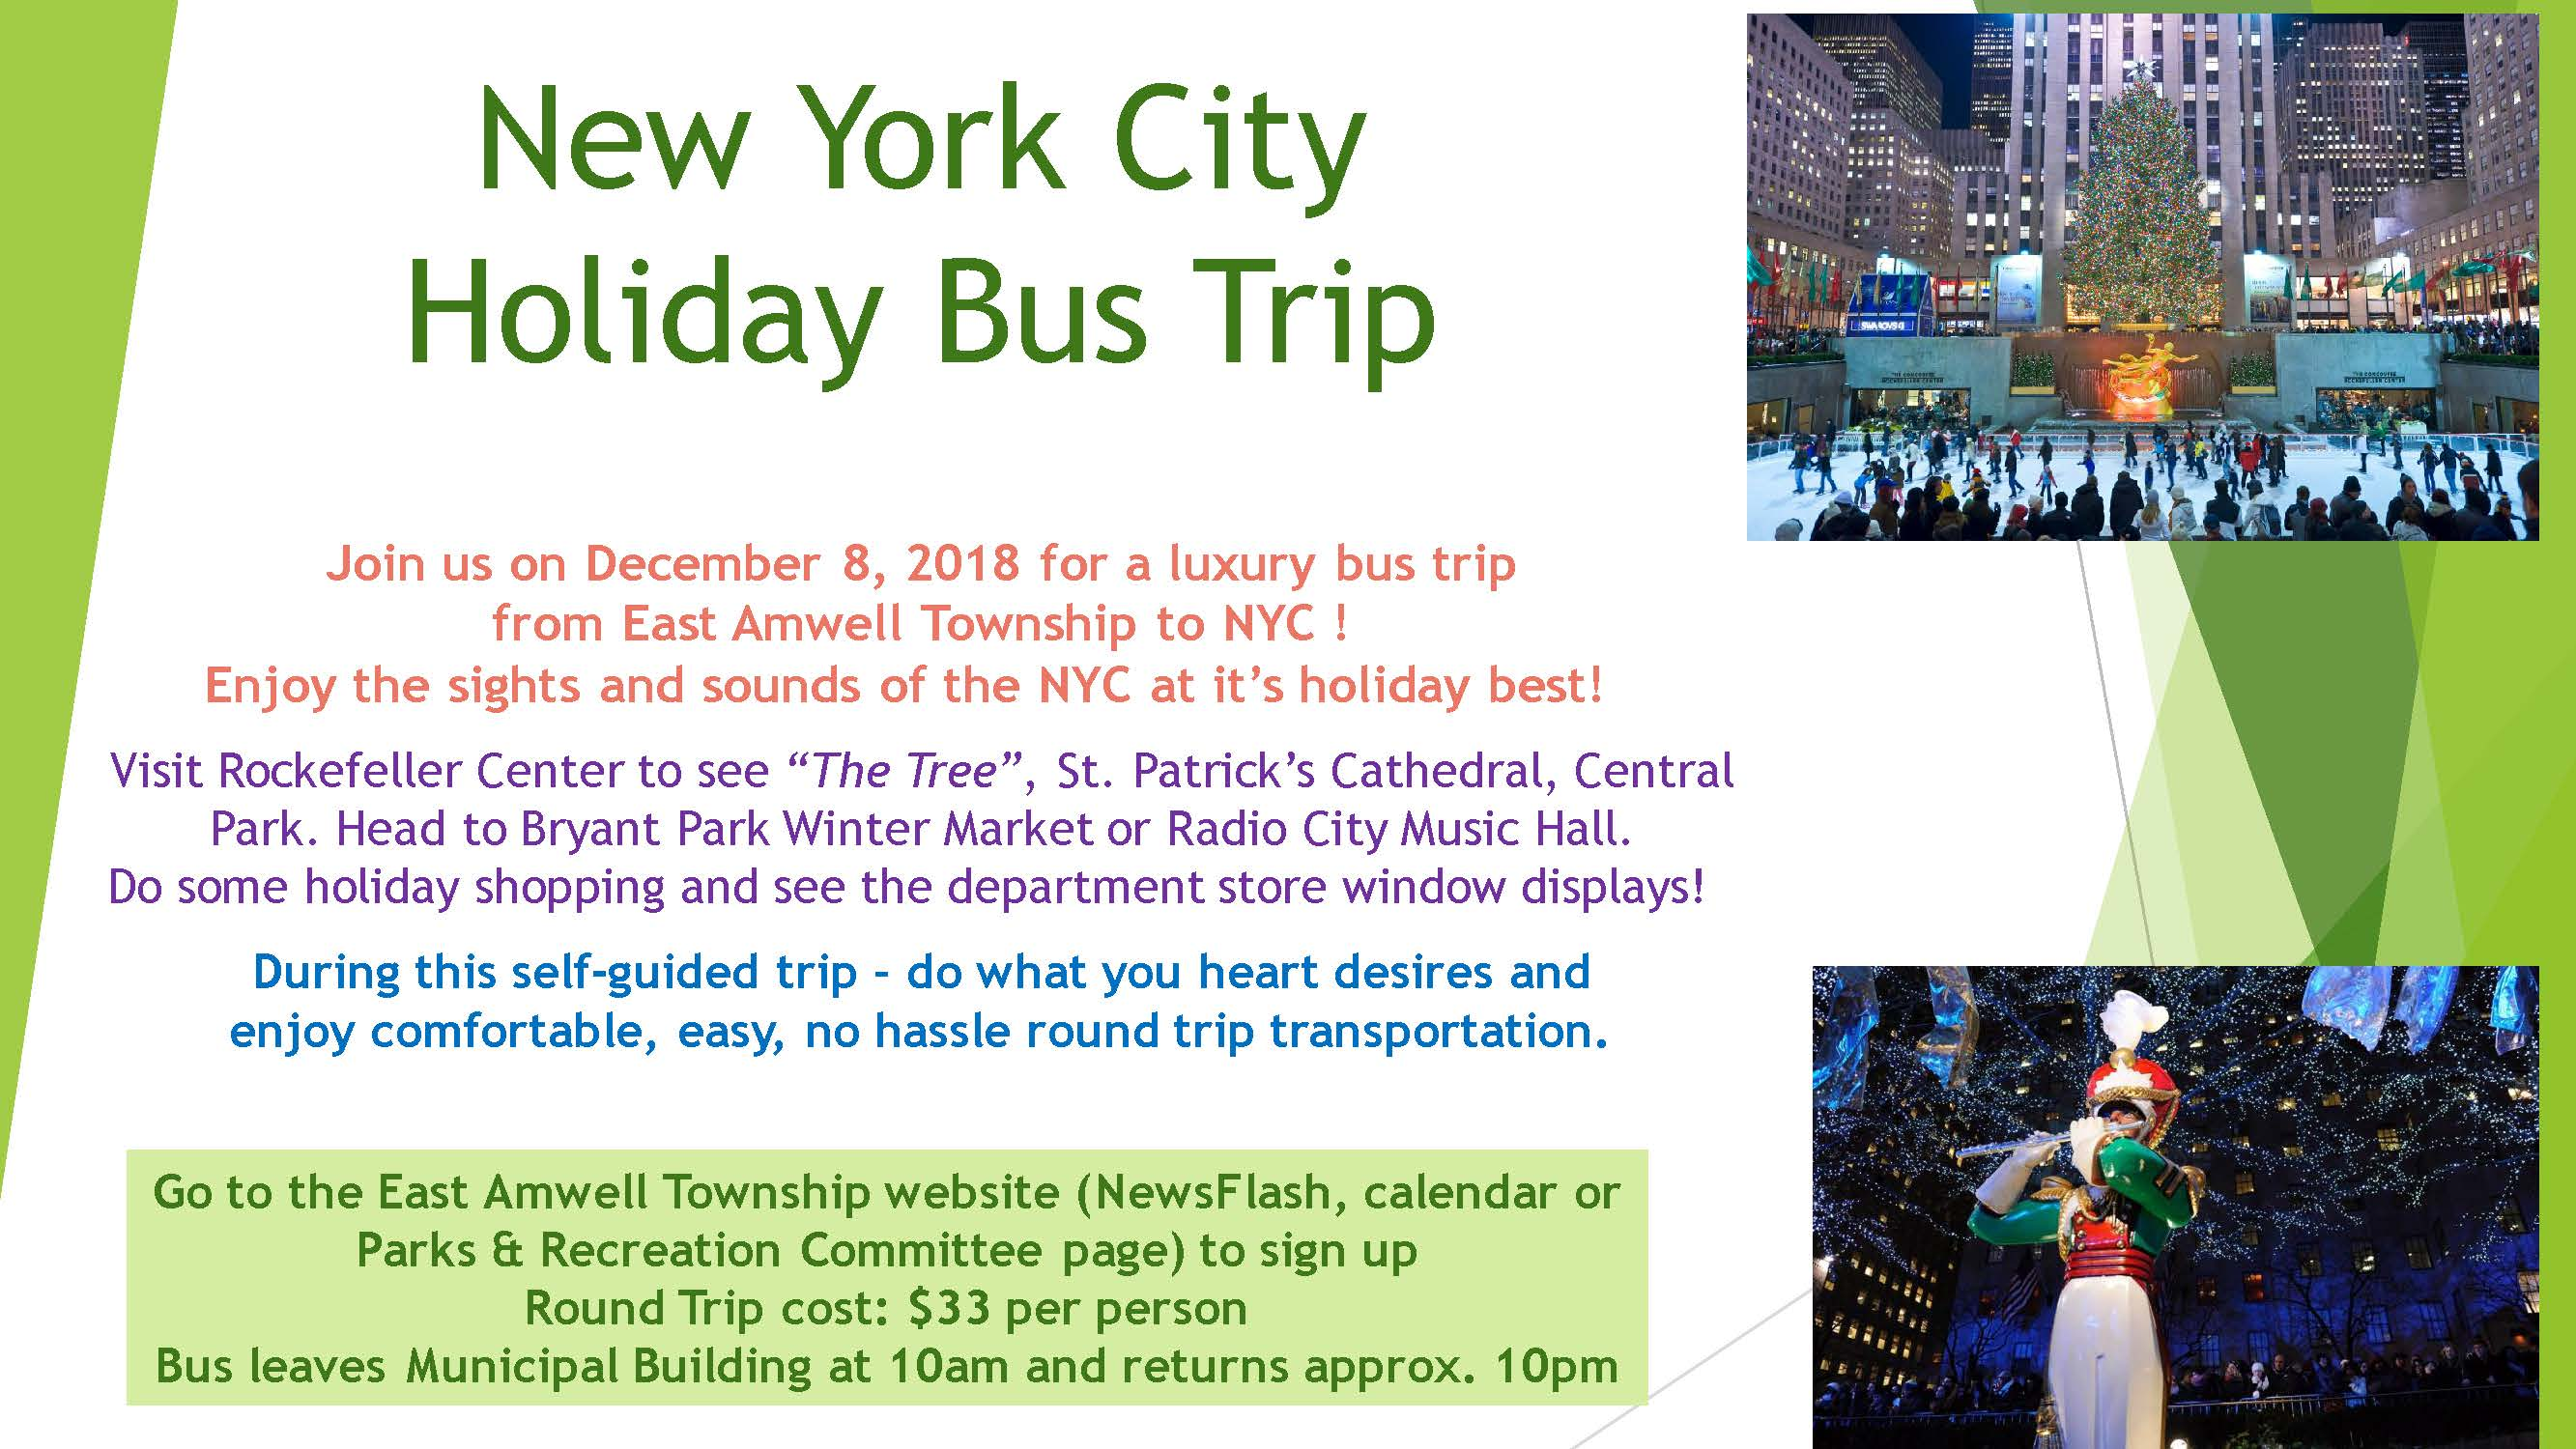 New York City Holiday Bus Trip